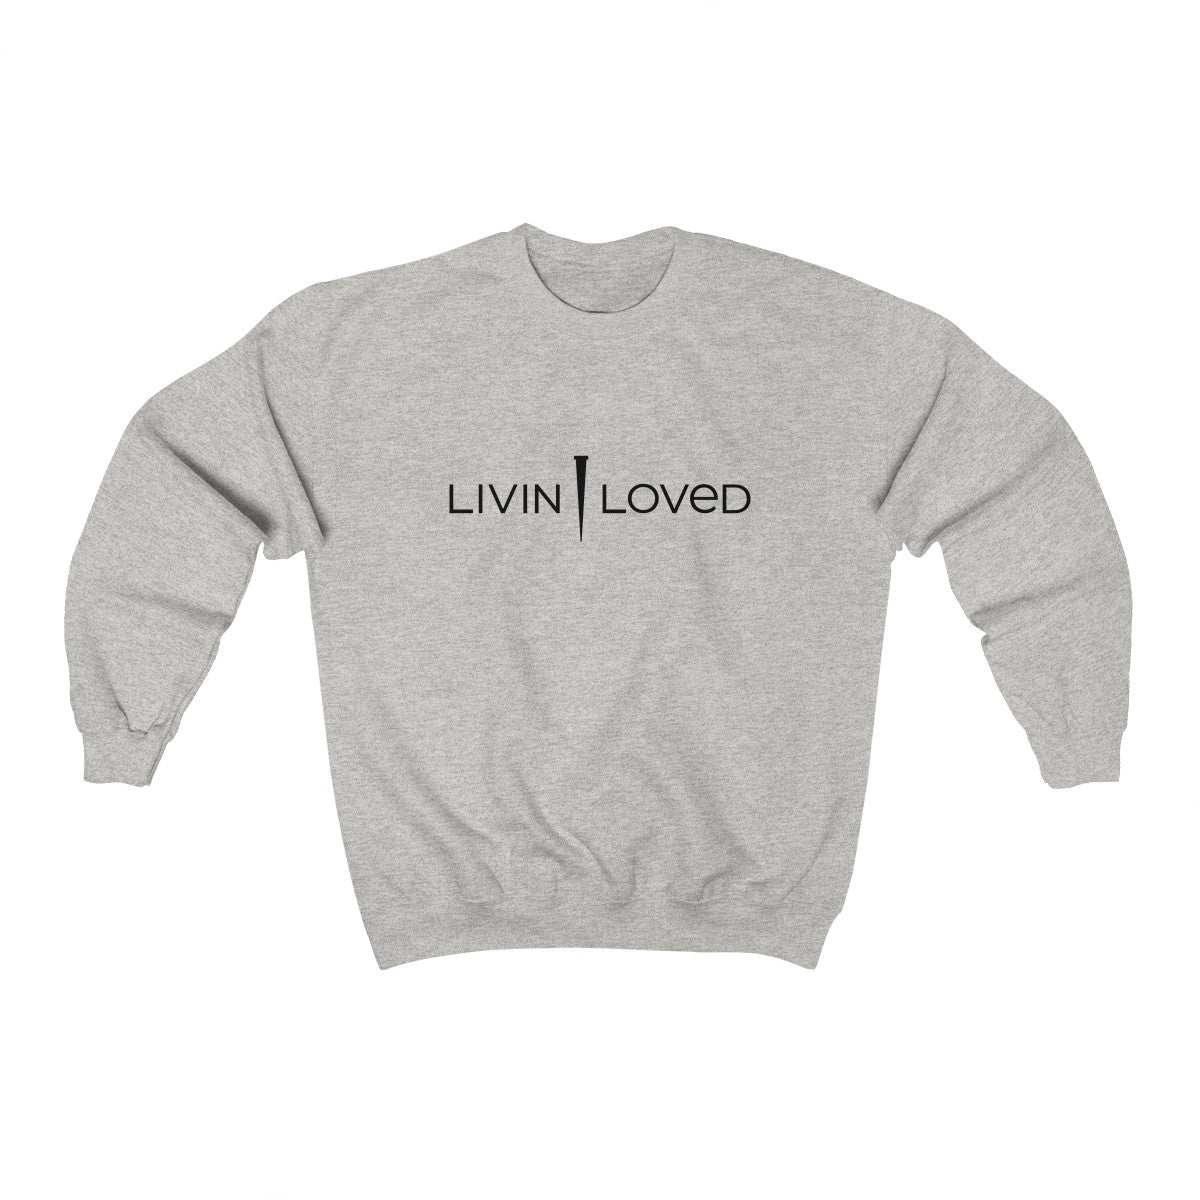 Livin Loved Unisex Heavy Blend™ Crewneck Sweatshirt